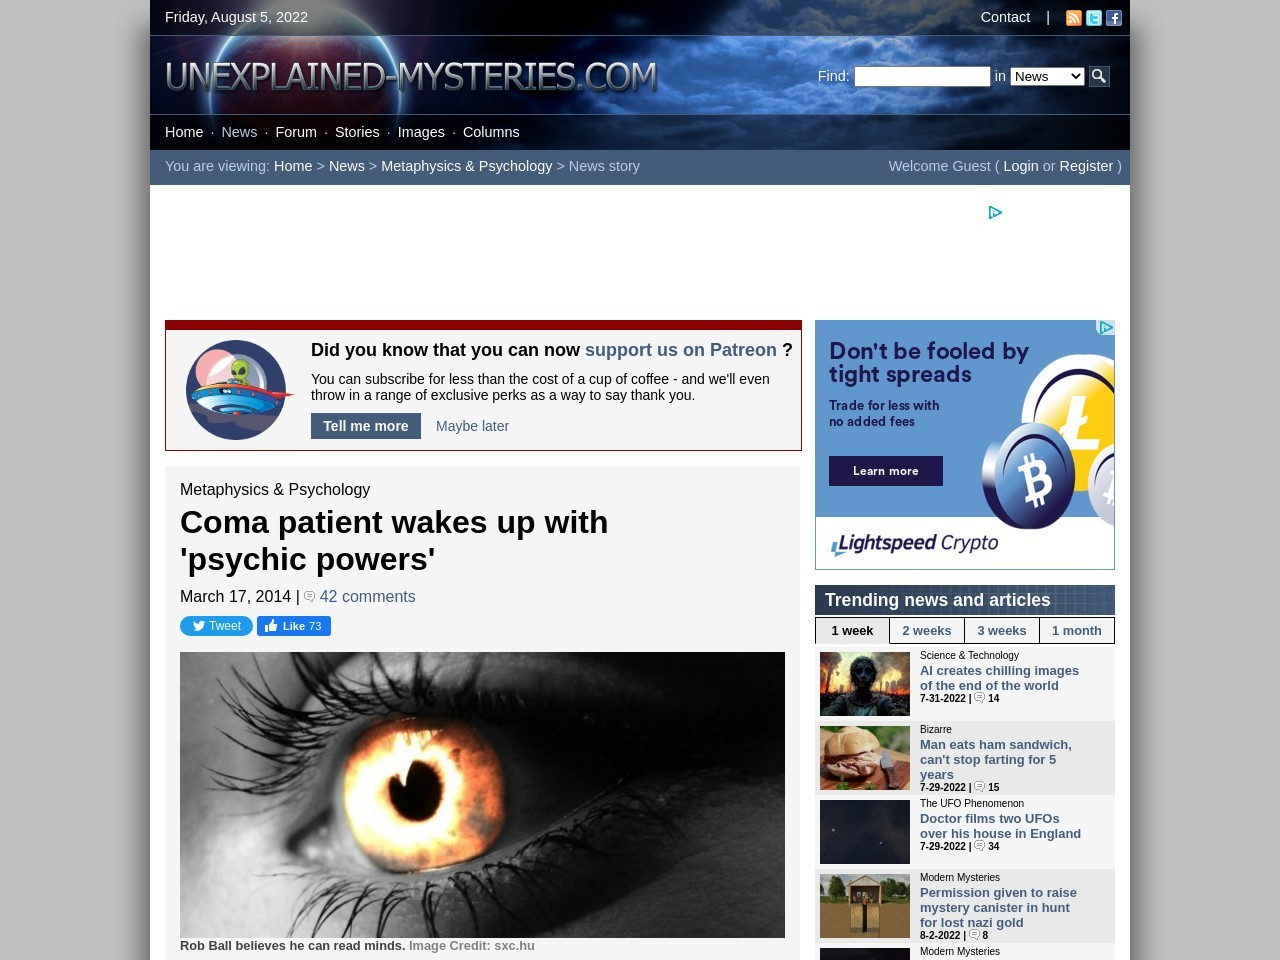 Coma patient wakes up with 'psychic powers'